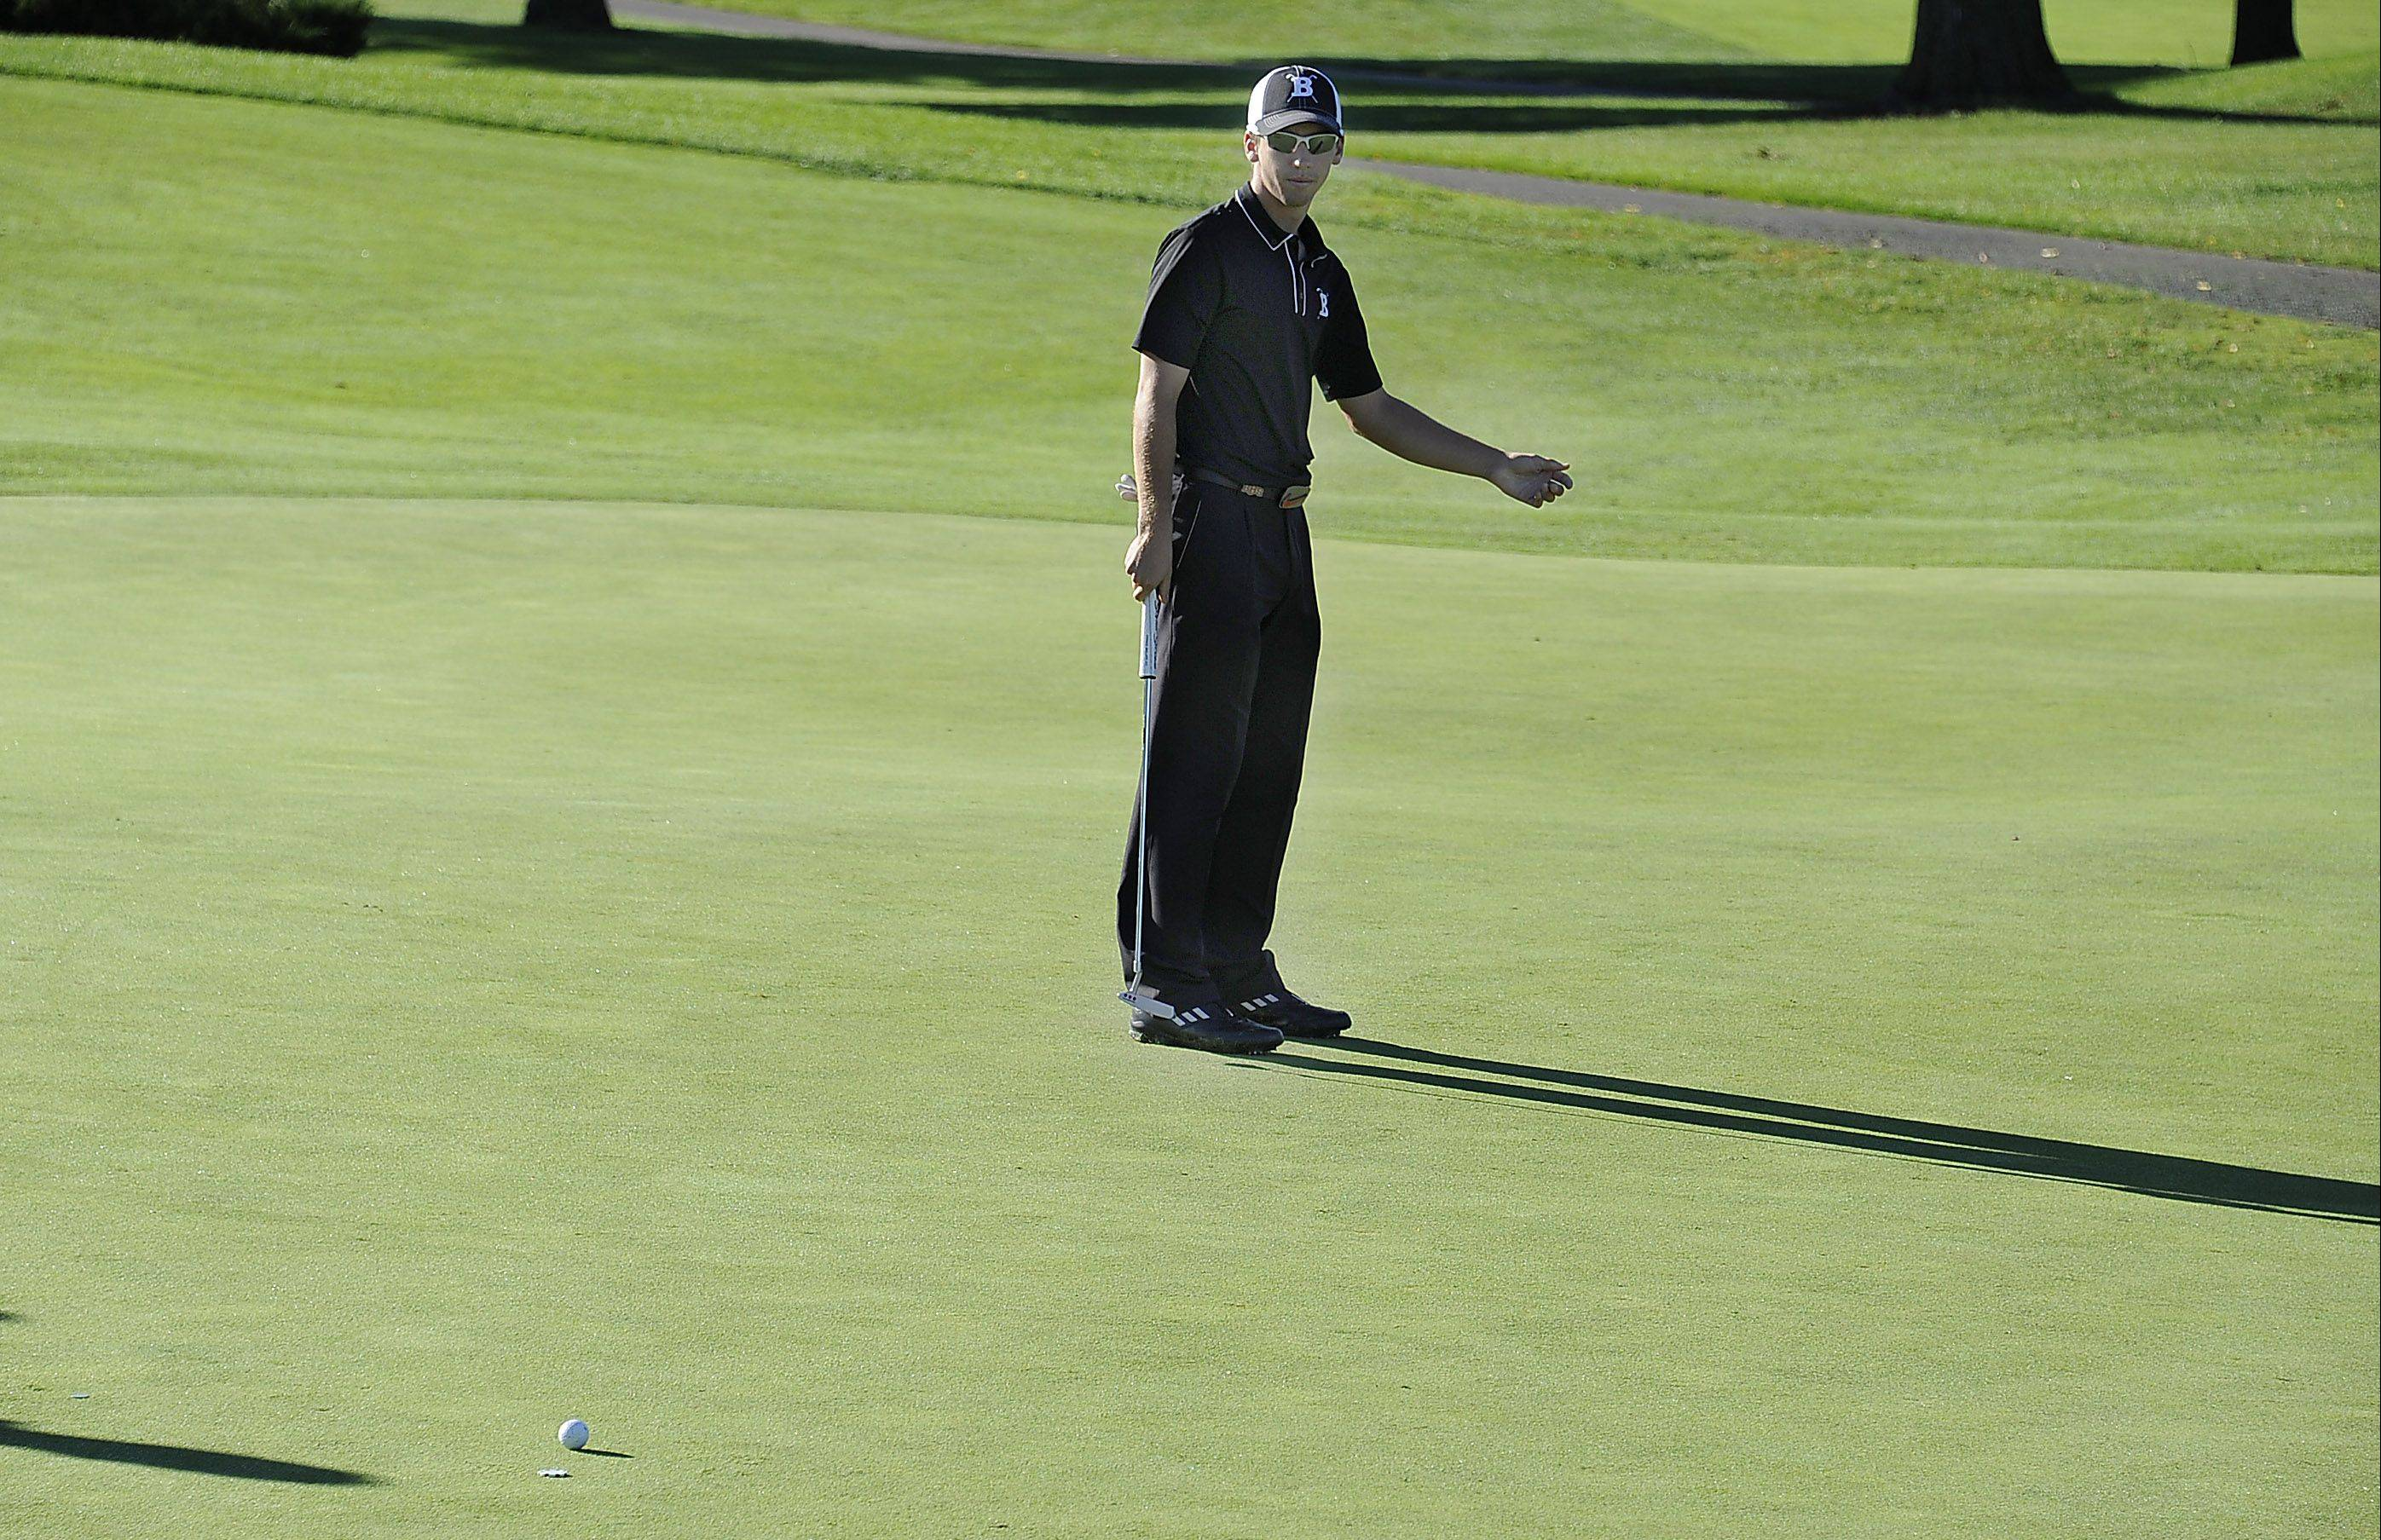 Barrington's Brad Powell follows his putt with a little body english to no avail on No. 3 at Wheeling's Invitational held at Chevy Chase Golf Club in Wheeling on Saturday.